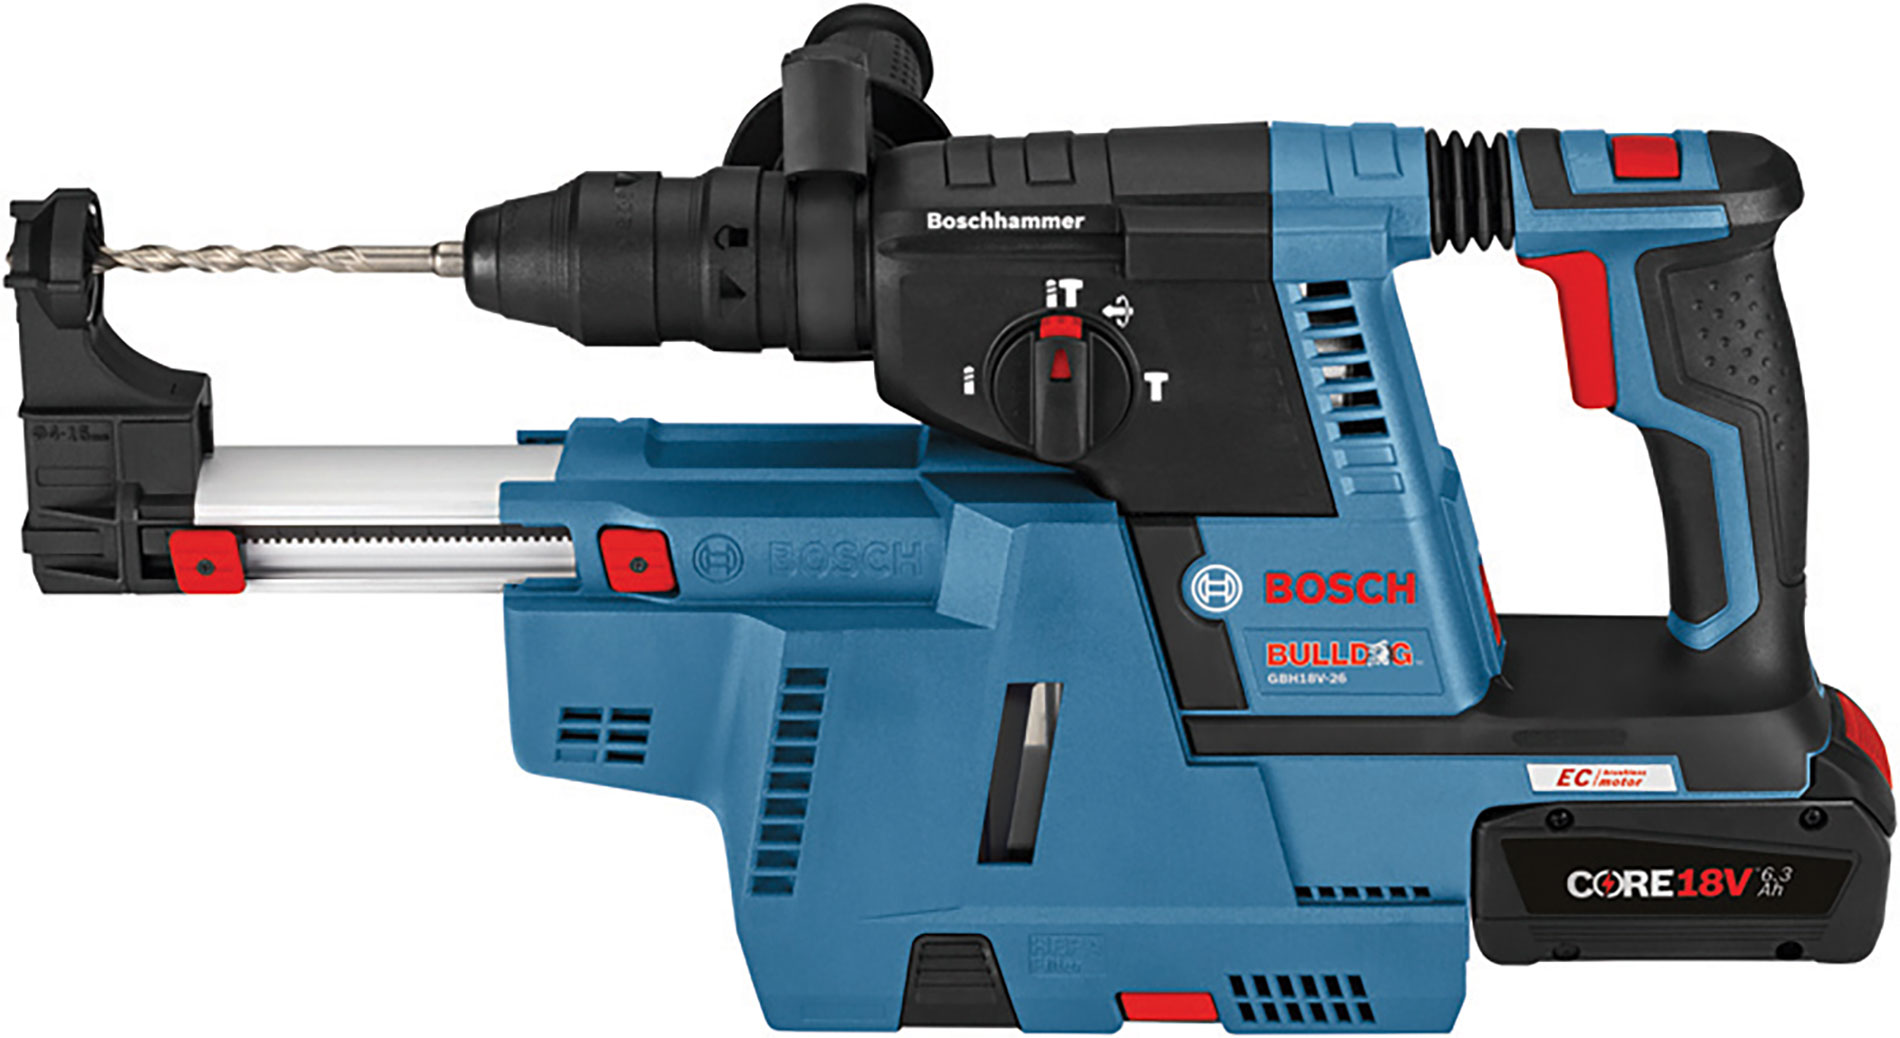 Bosch GDE18V-16 dust collection attachment for rotary hammer is a self-contained unit with HEPA filter.  www.boschtools.com